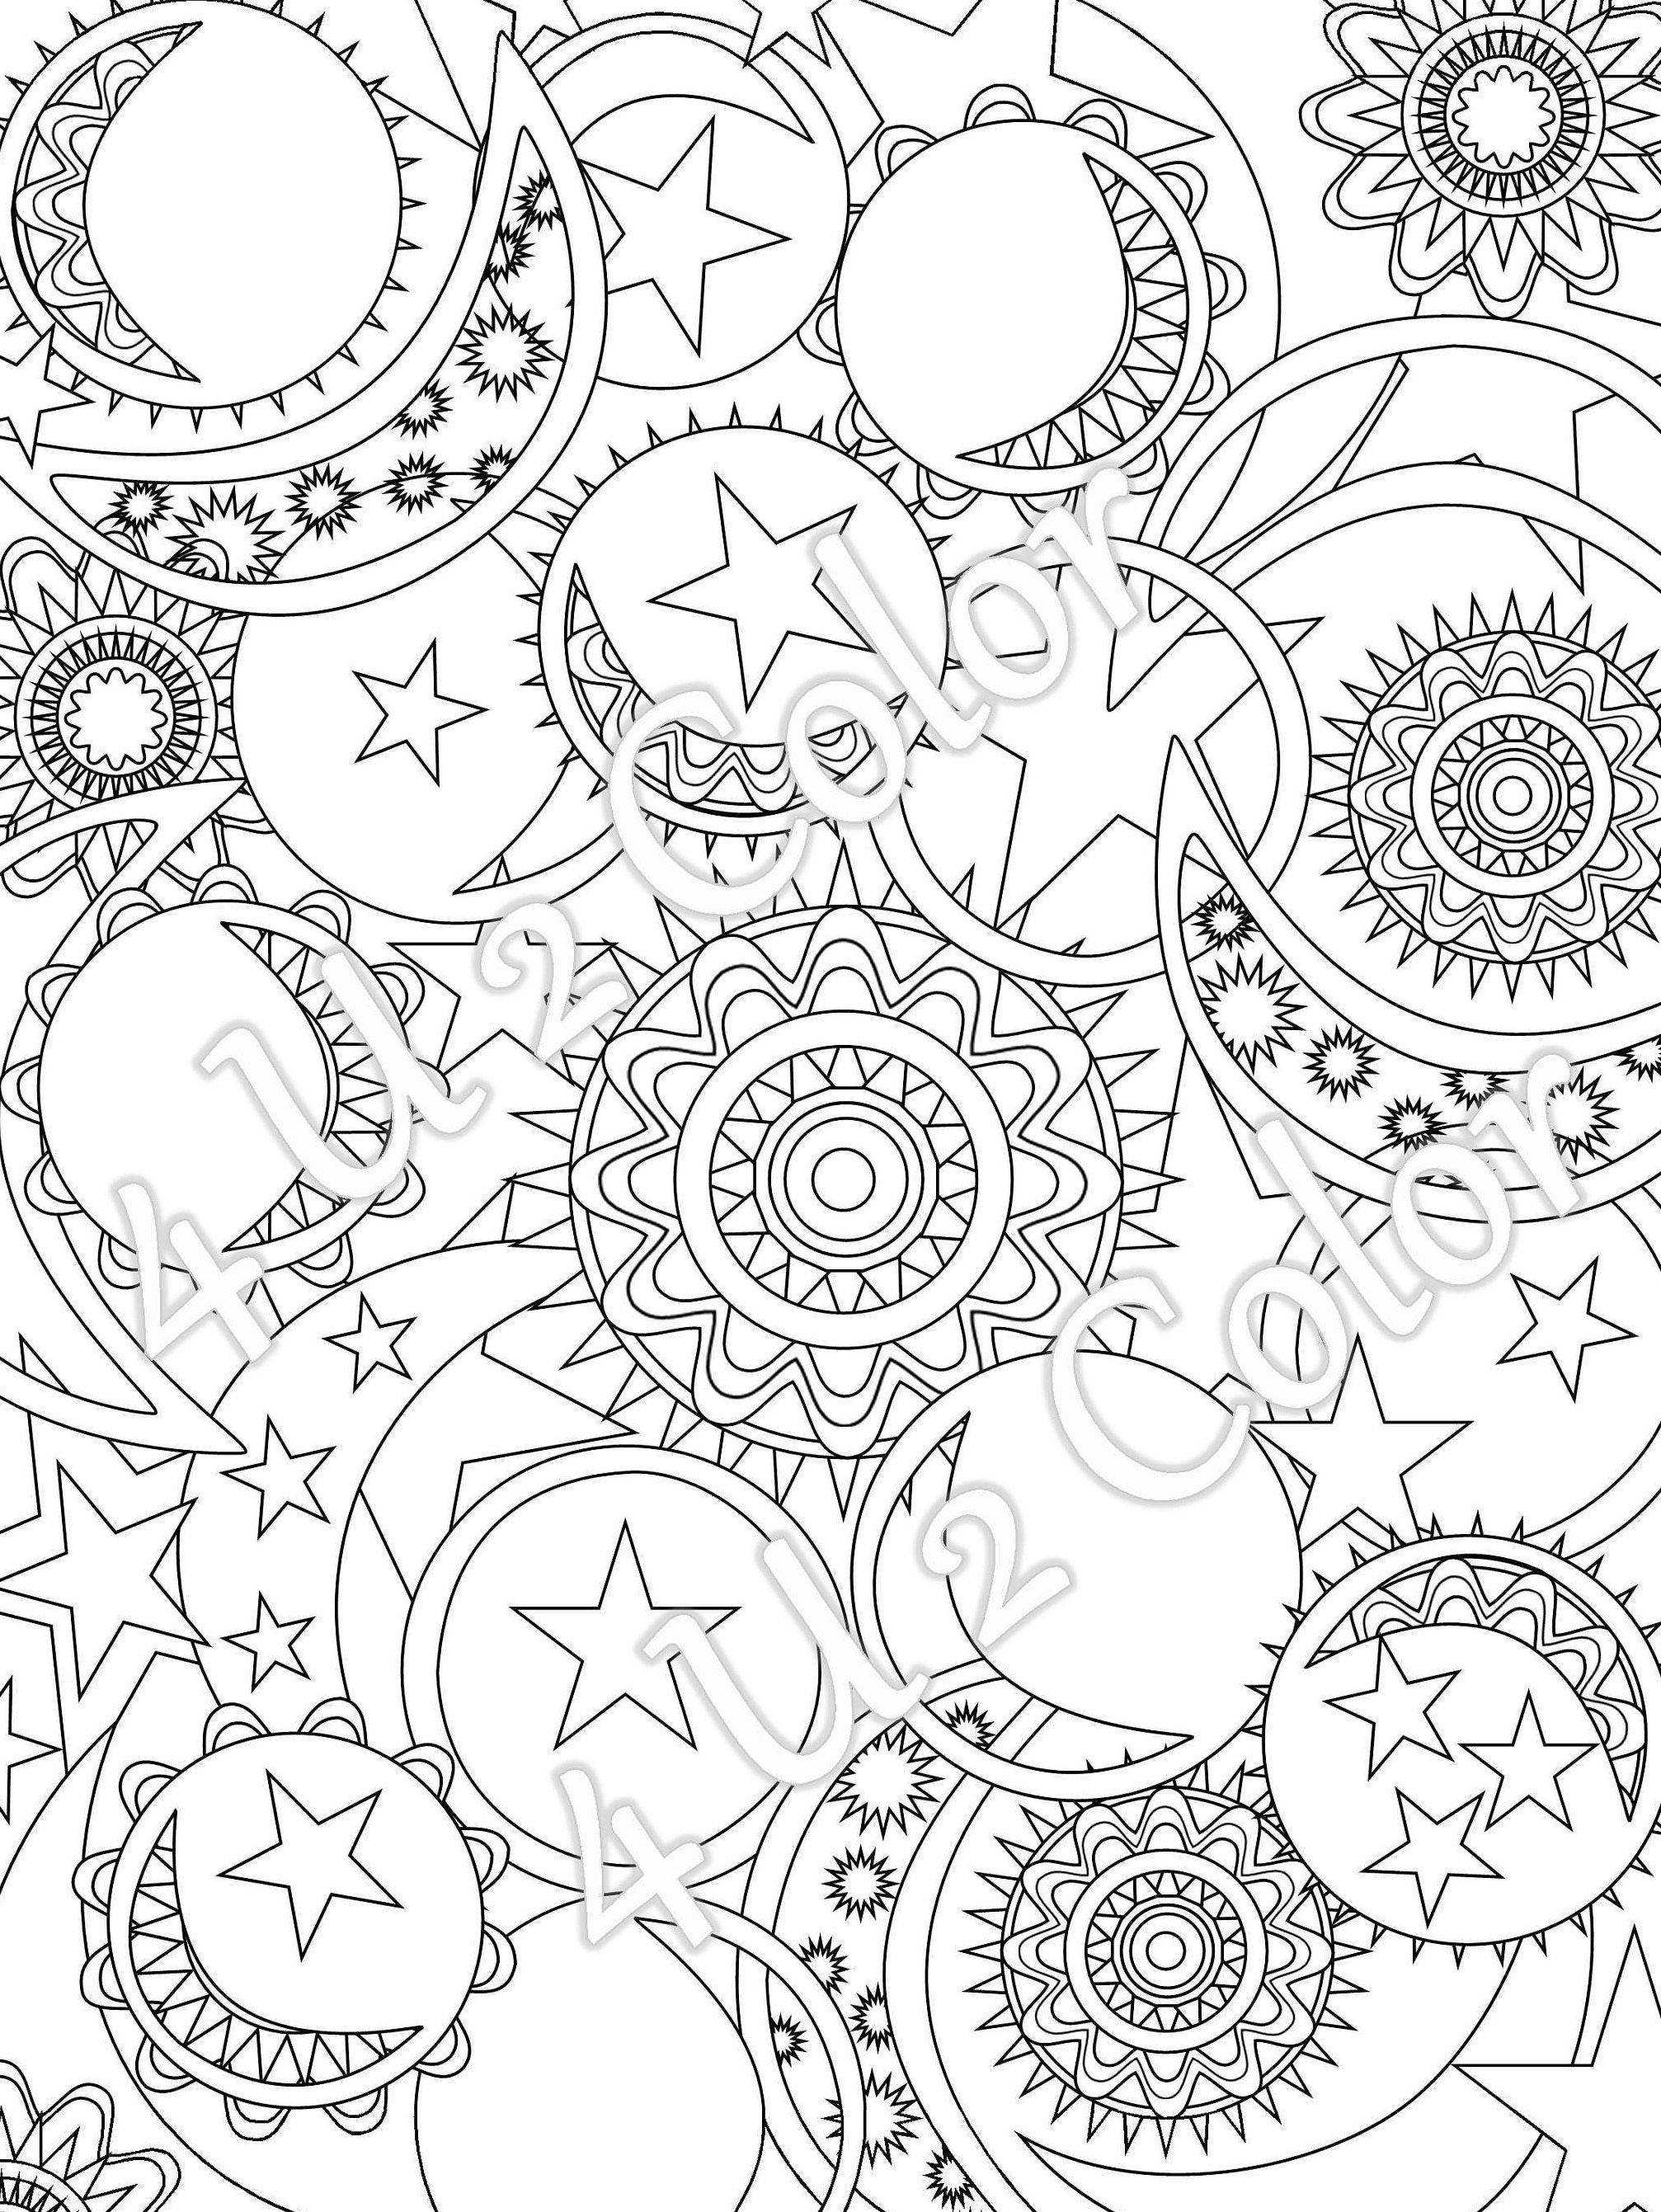 - Sun - Moon - Stars - #1, Coloring Page, Sun, Moon & Stars Coloring